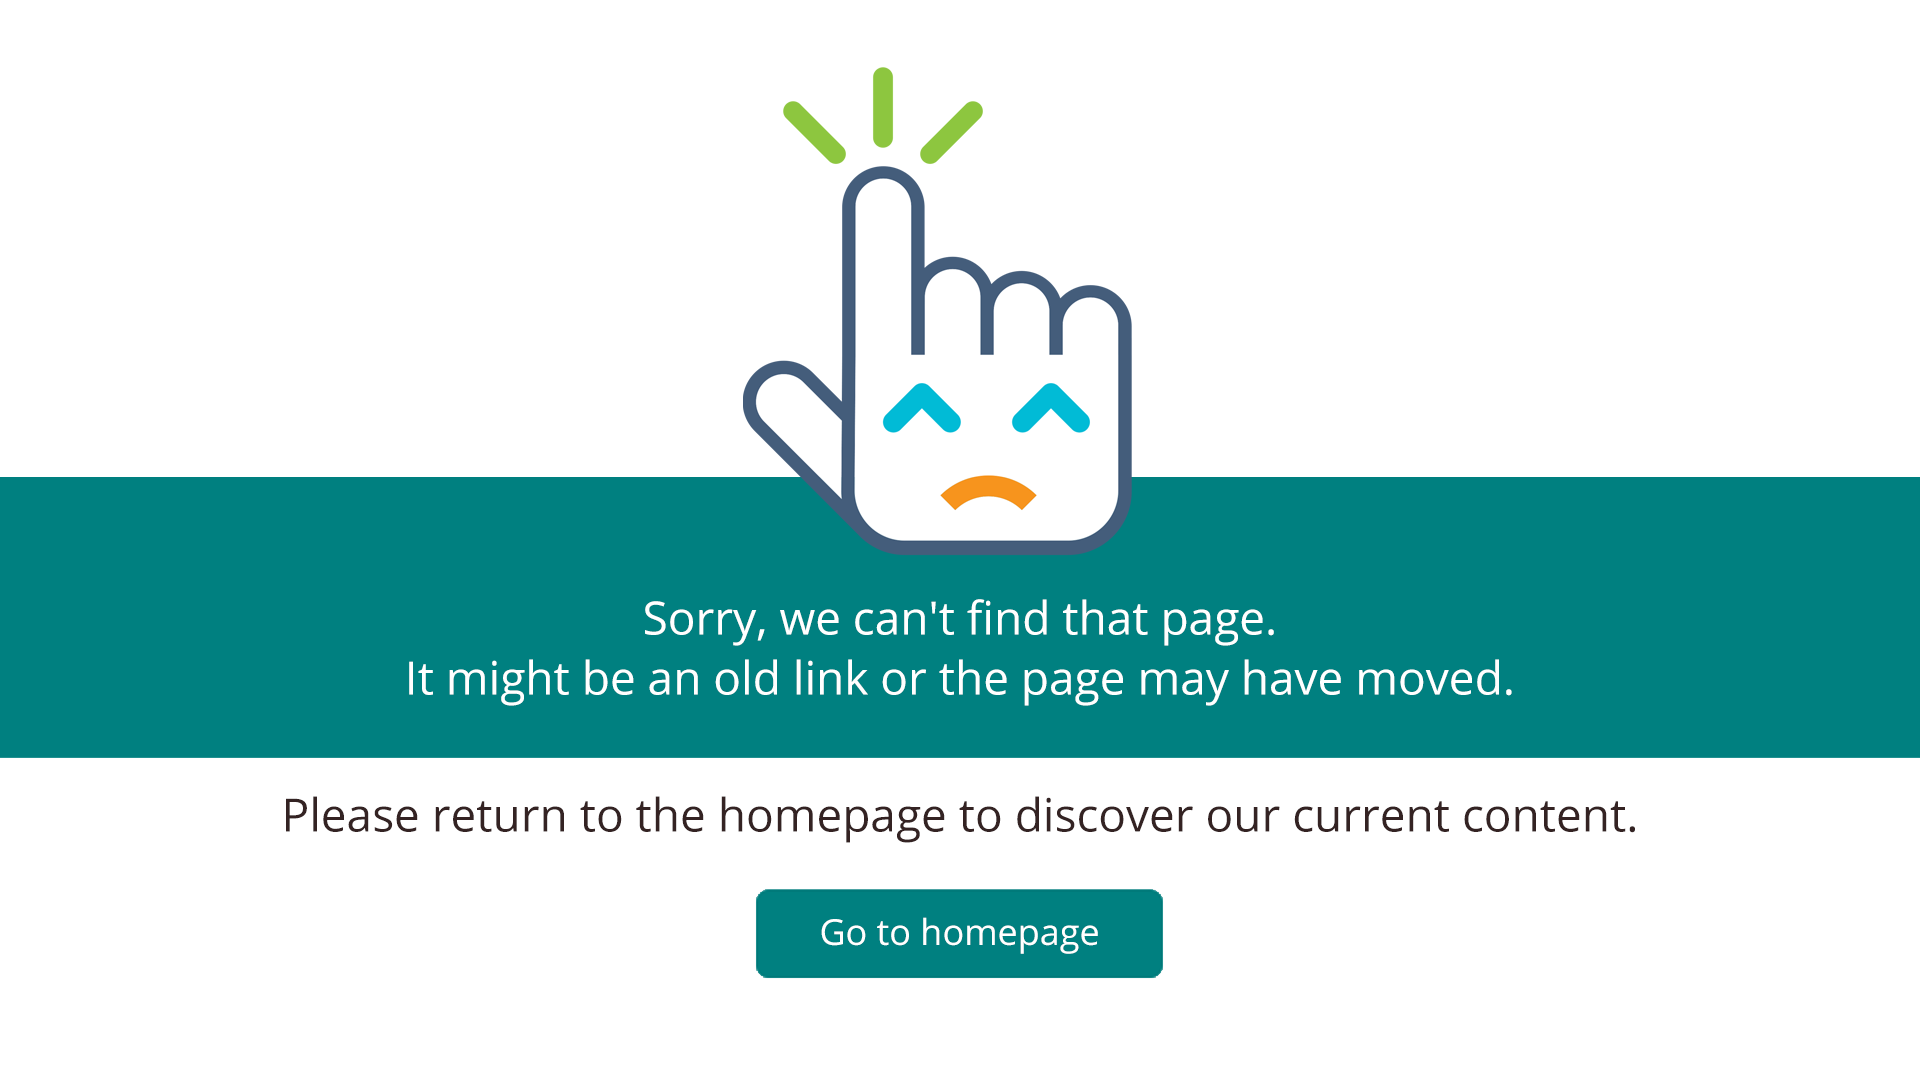 Sorry, we can't find that page. It might be an old link or the page may have moved. Please, return to the homepage to discover our current content.